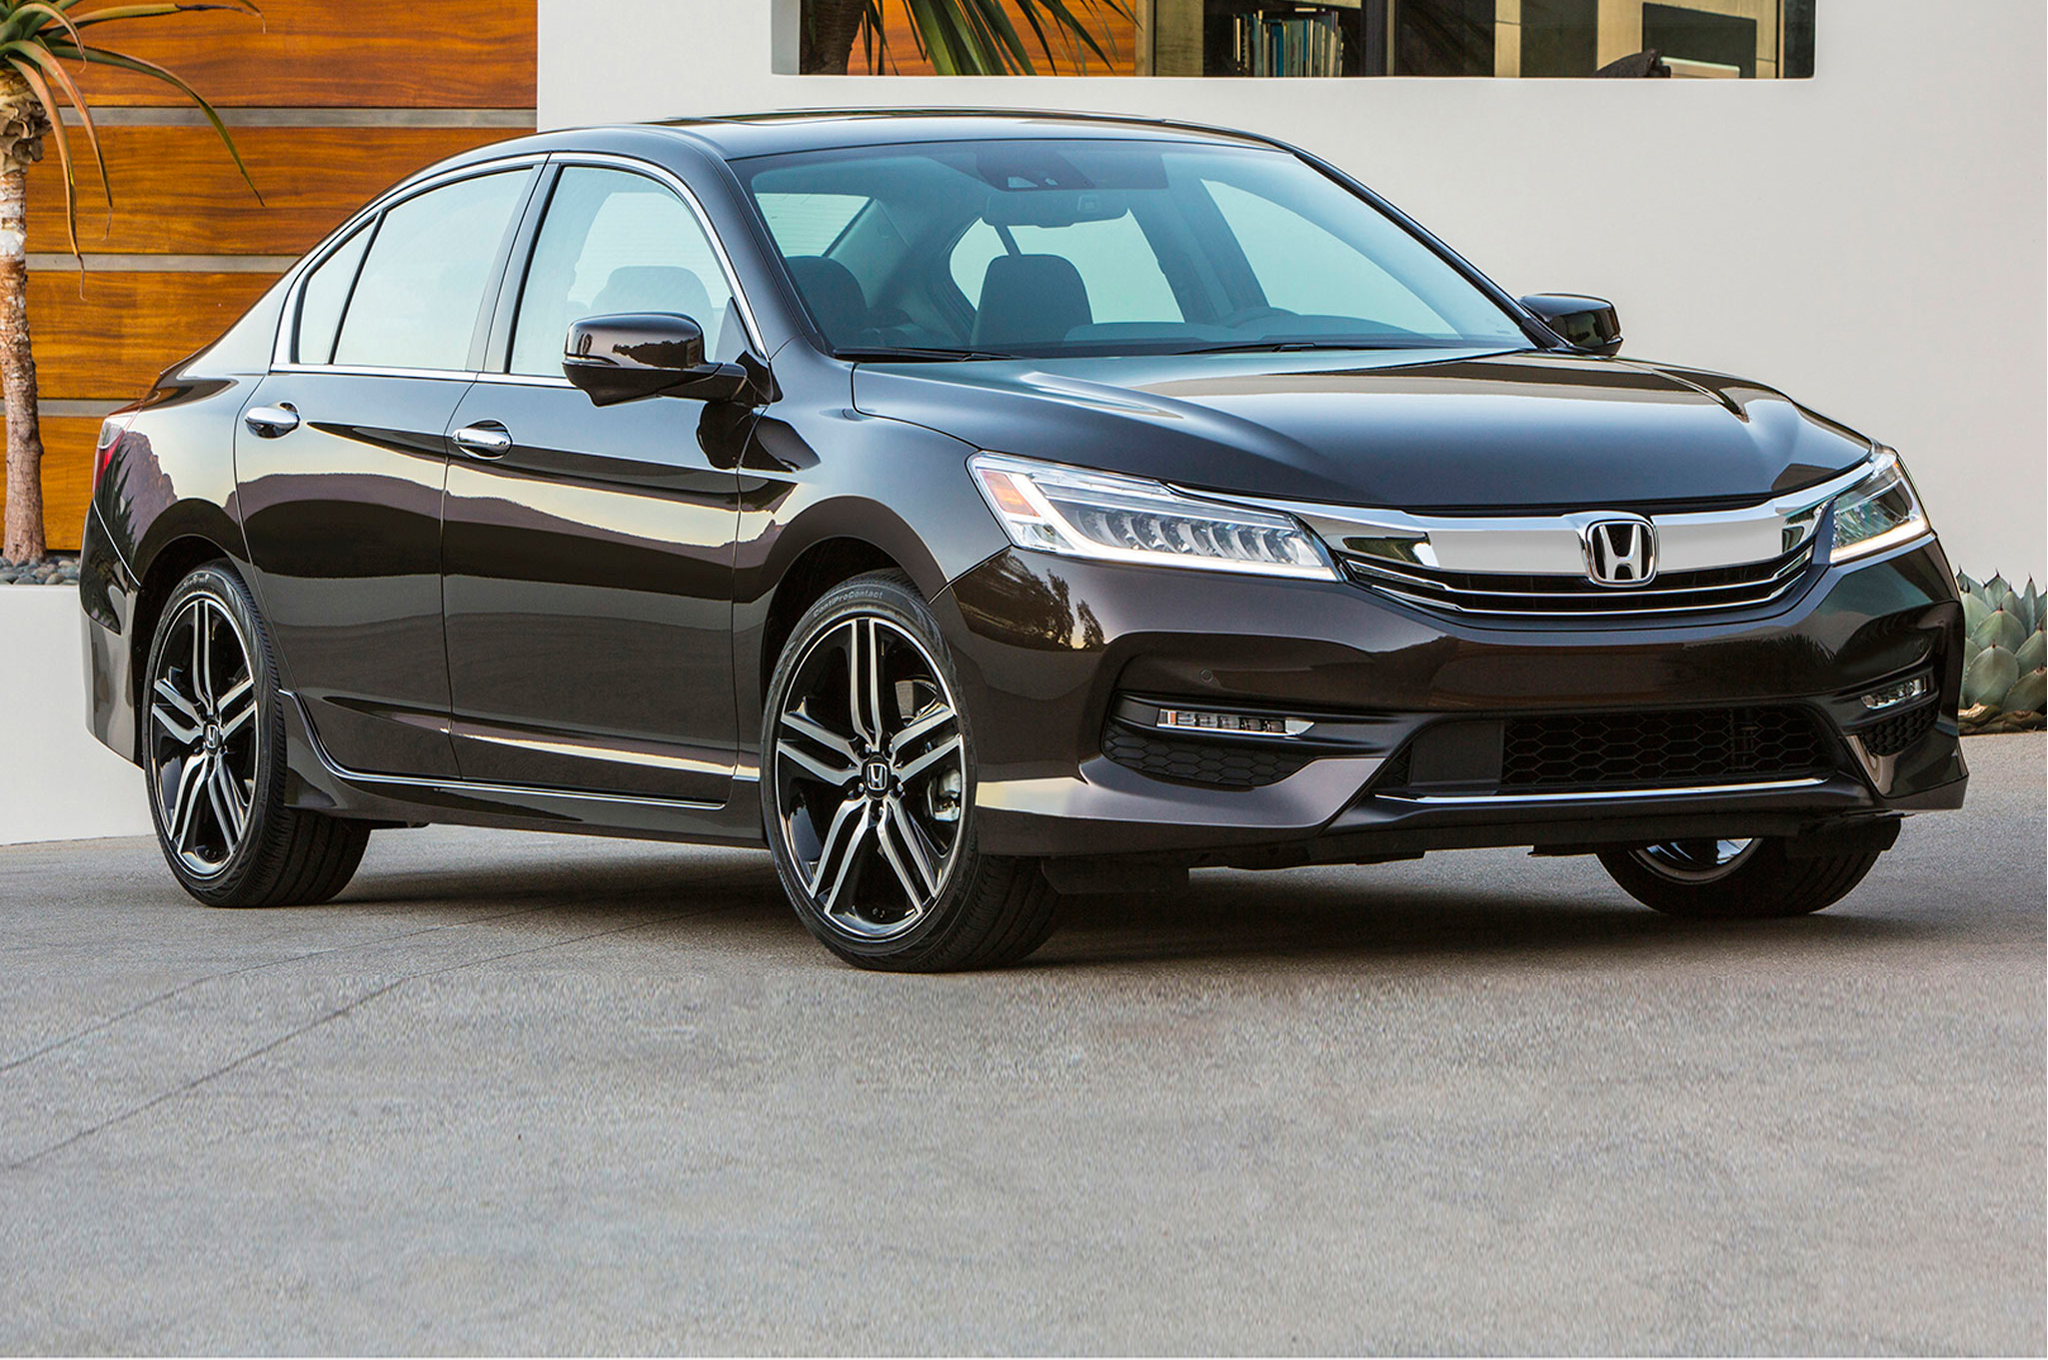 2016 Honda Accord New Design (Photo 51 of 52)